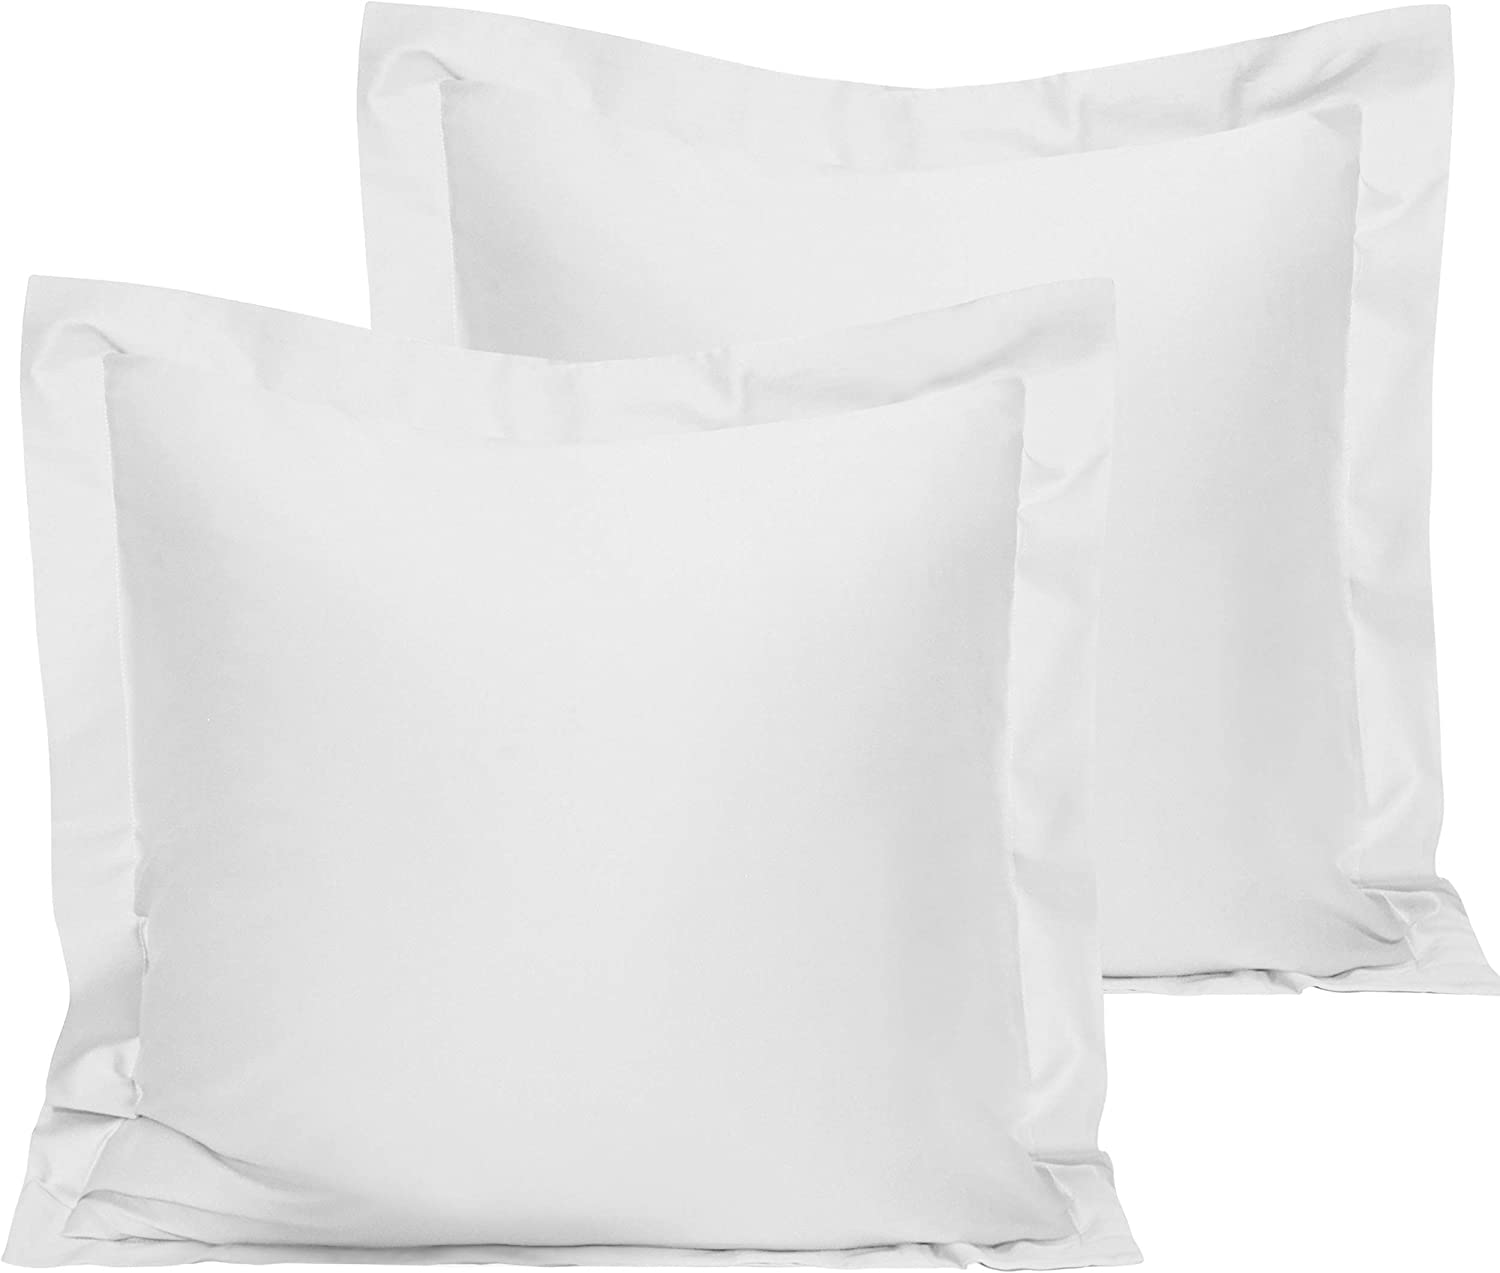 NTBAY 500 Thread Count 2 Pack Cotton Euro Bed Shams, Super Soft and Breathable Square Pillow Shams, 26 x 26 Inches, White